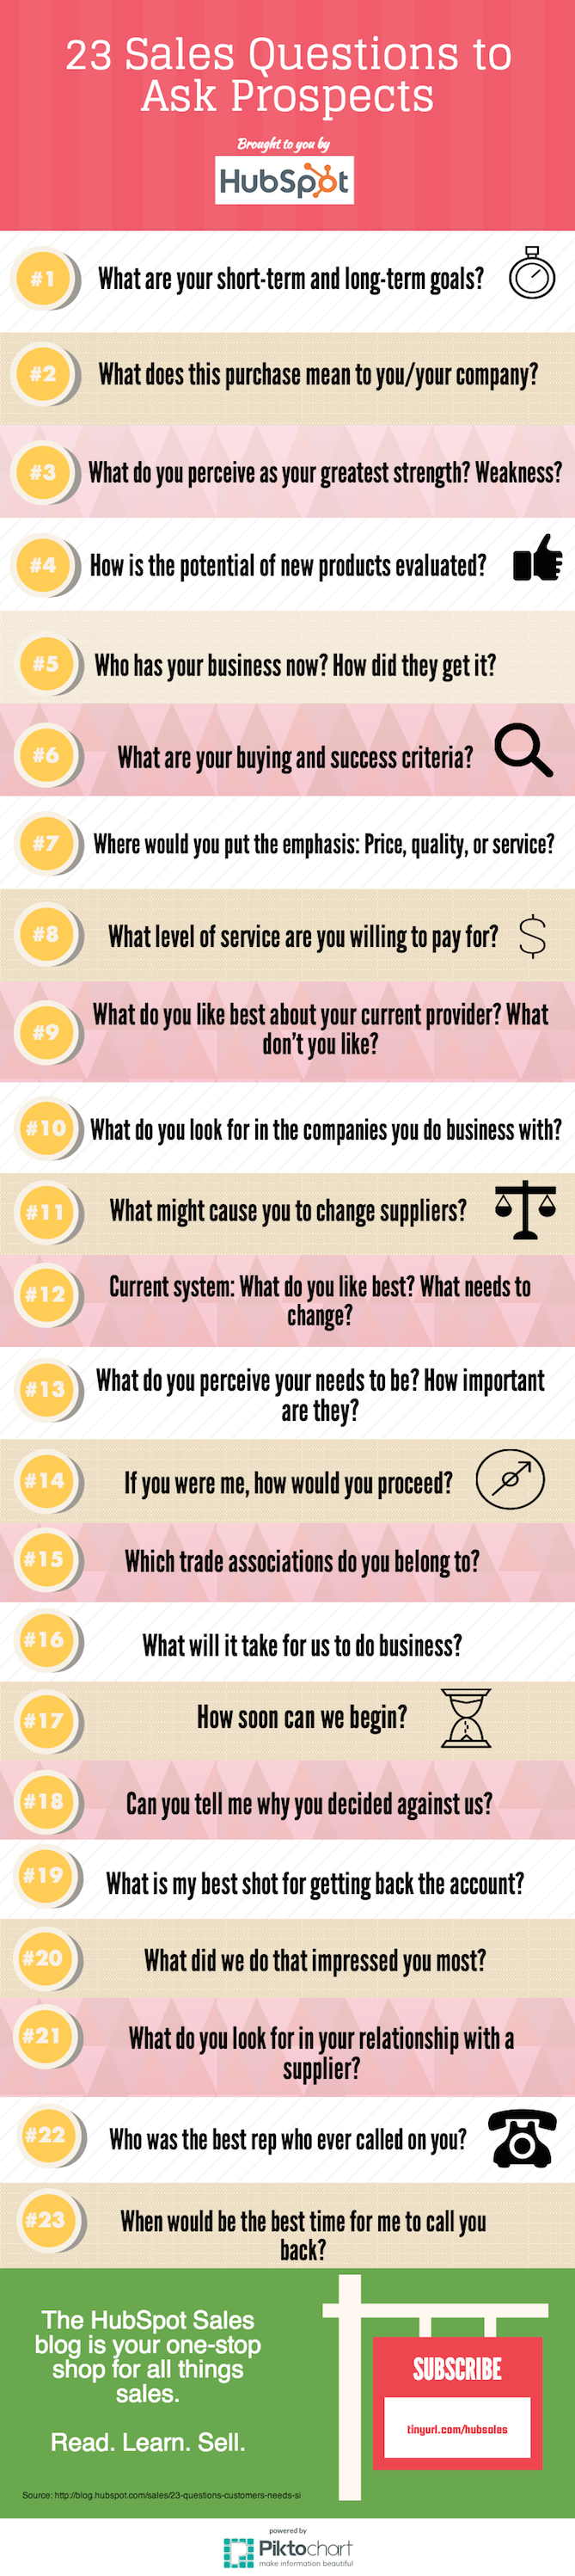 sales_questions_infographic.png